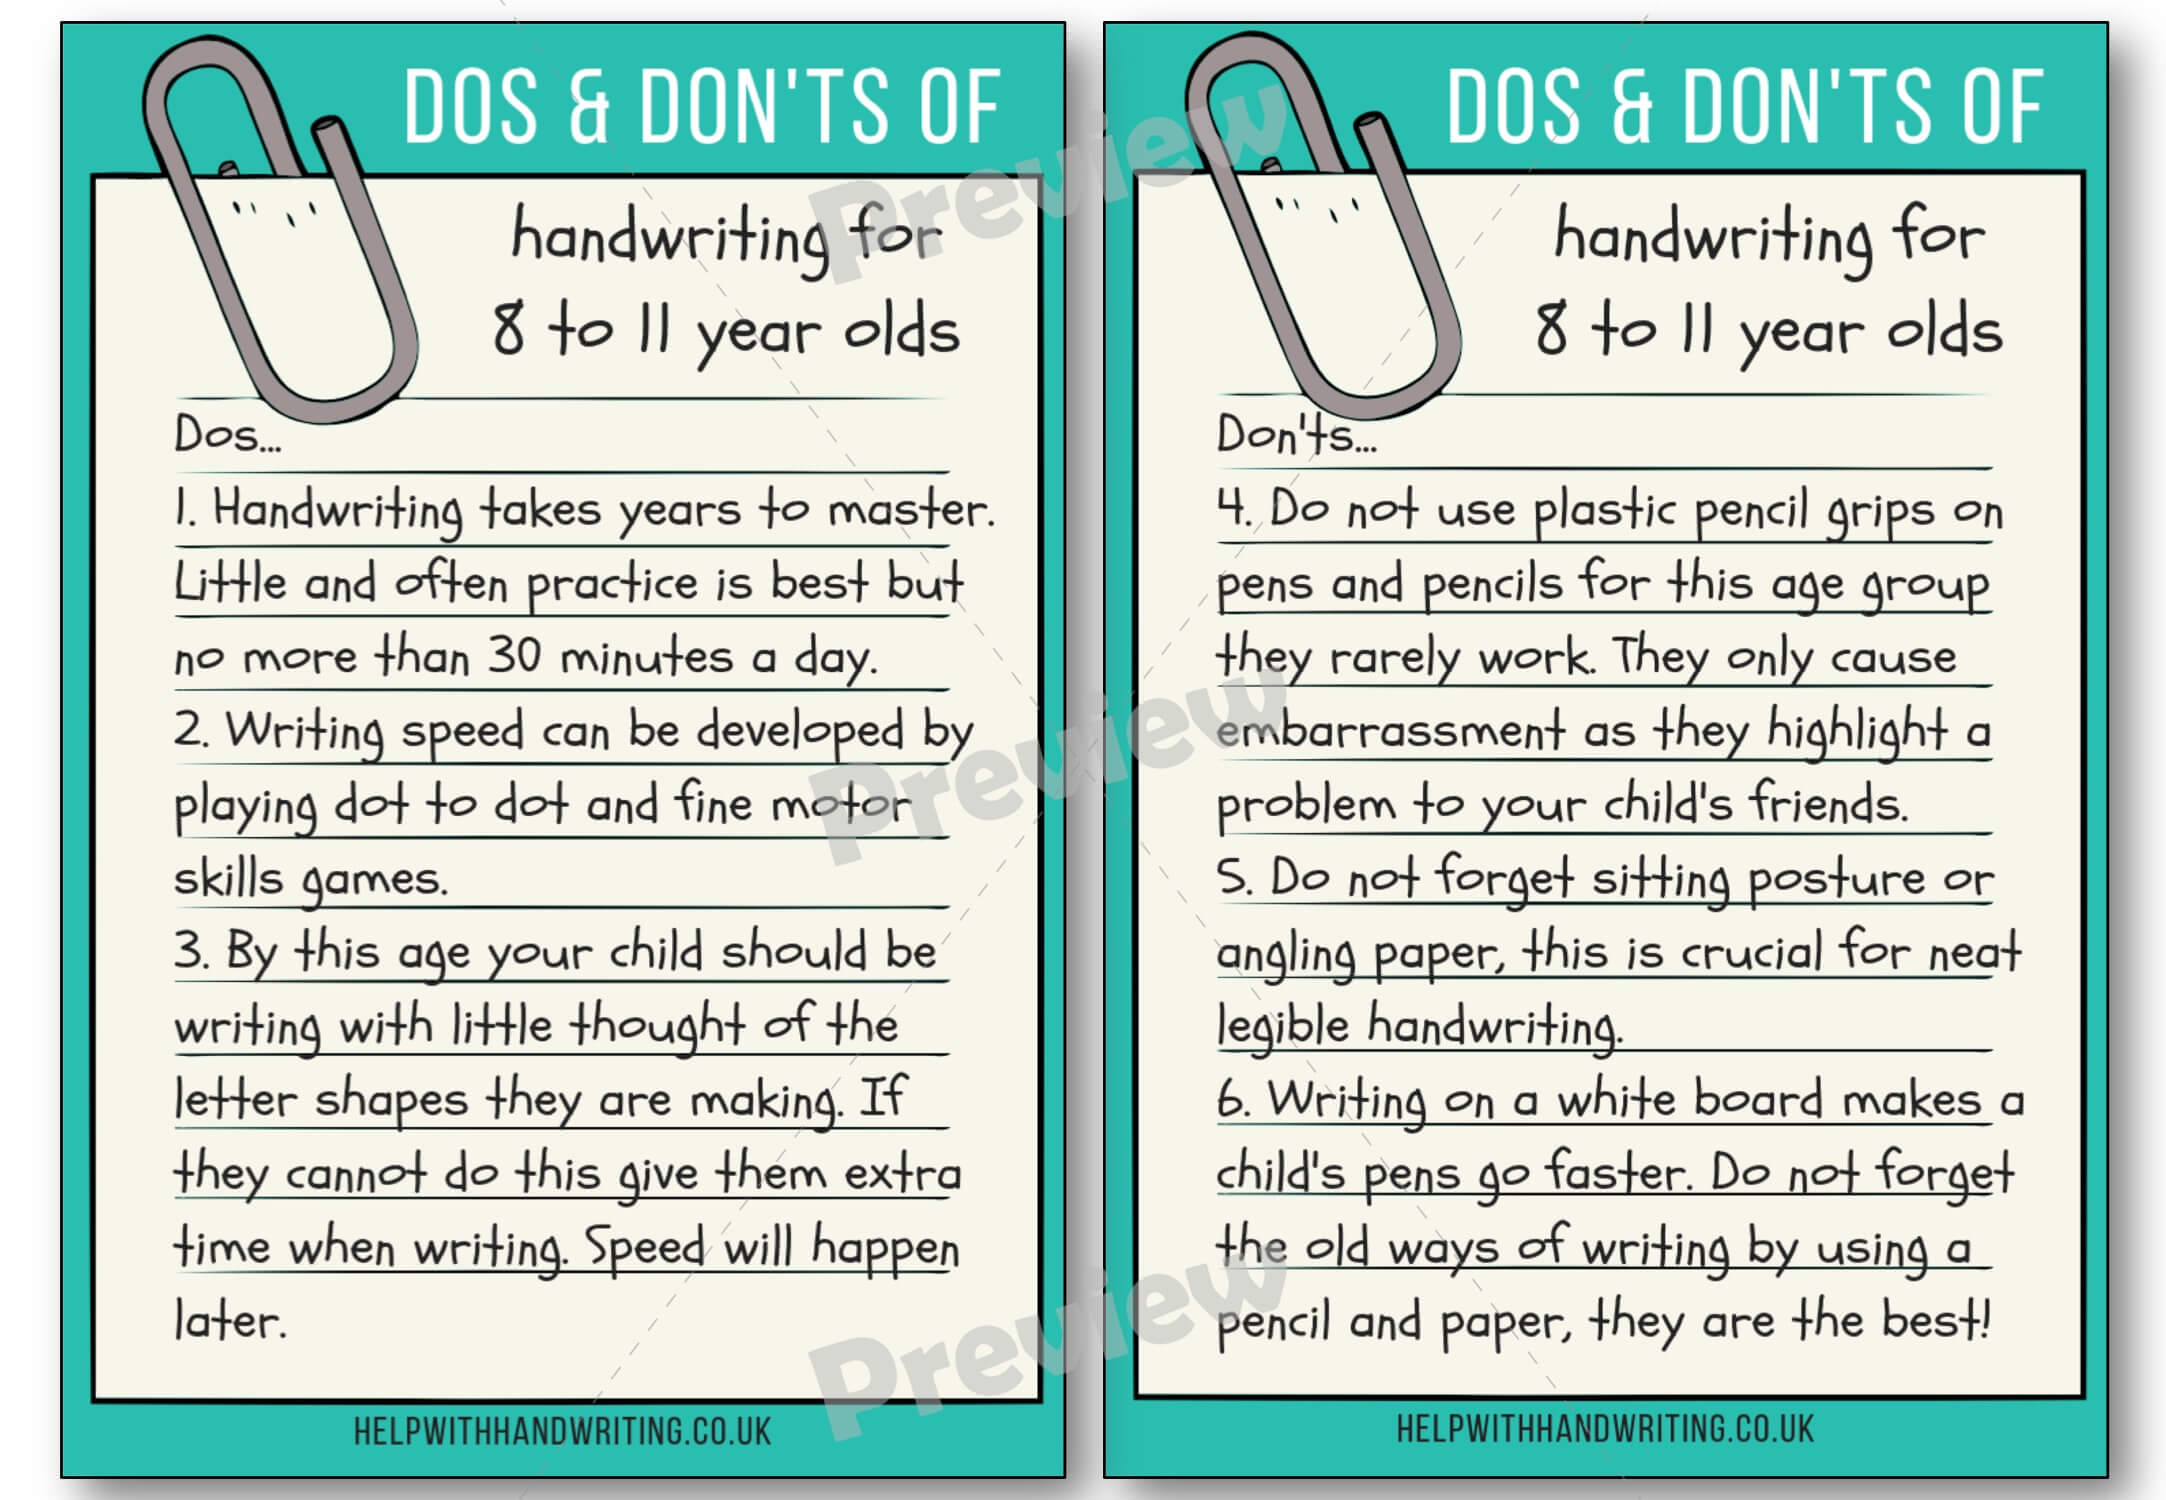 Handwriting dos and don'ts for 8 to 11 years Preview image worksheet